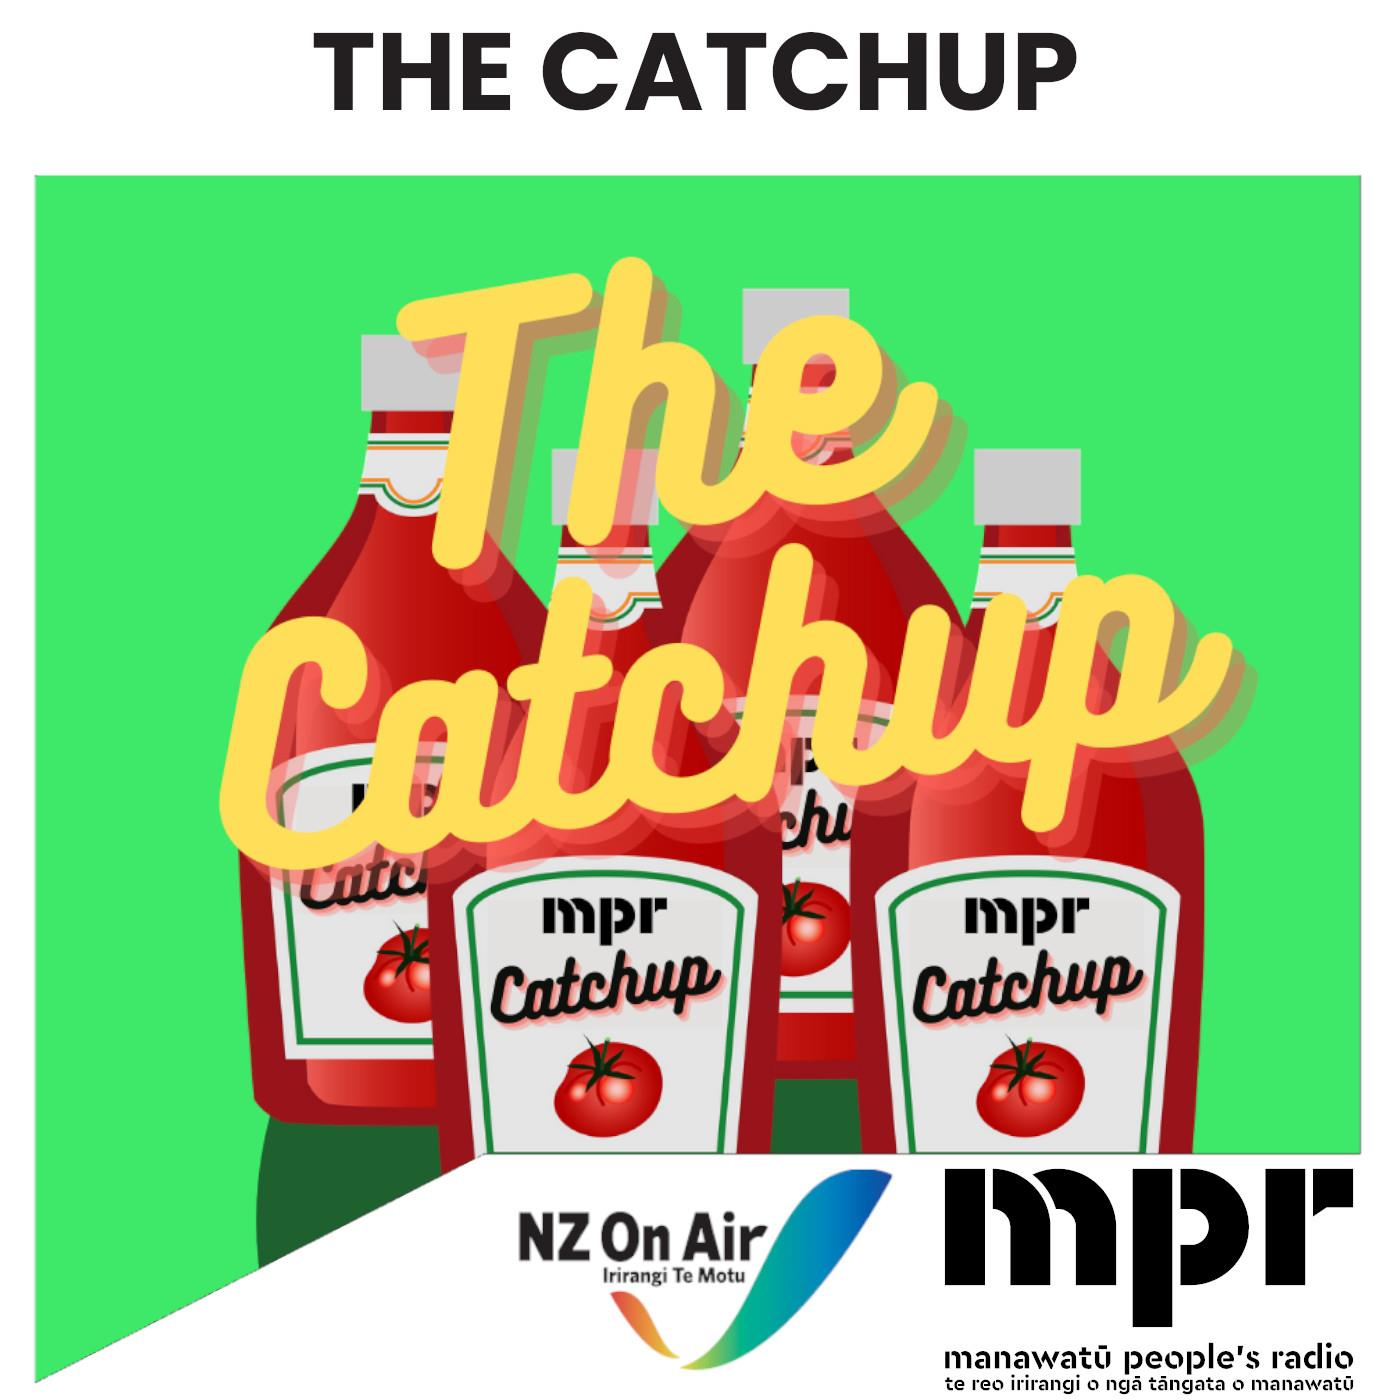 The Catchup